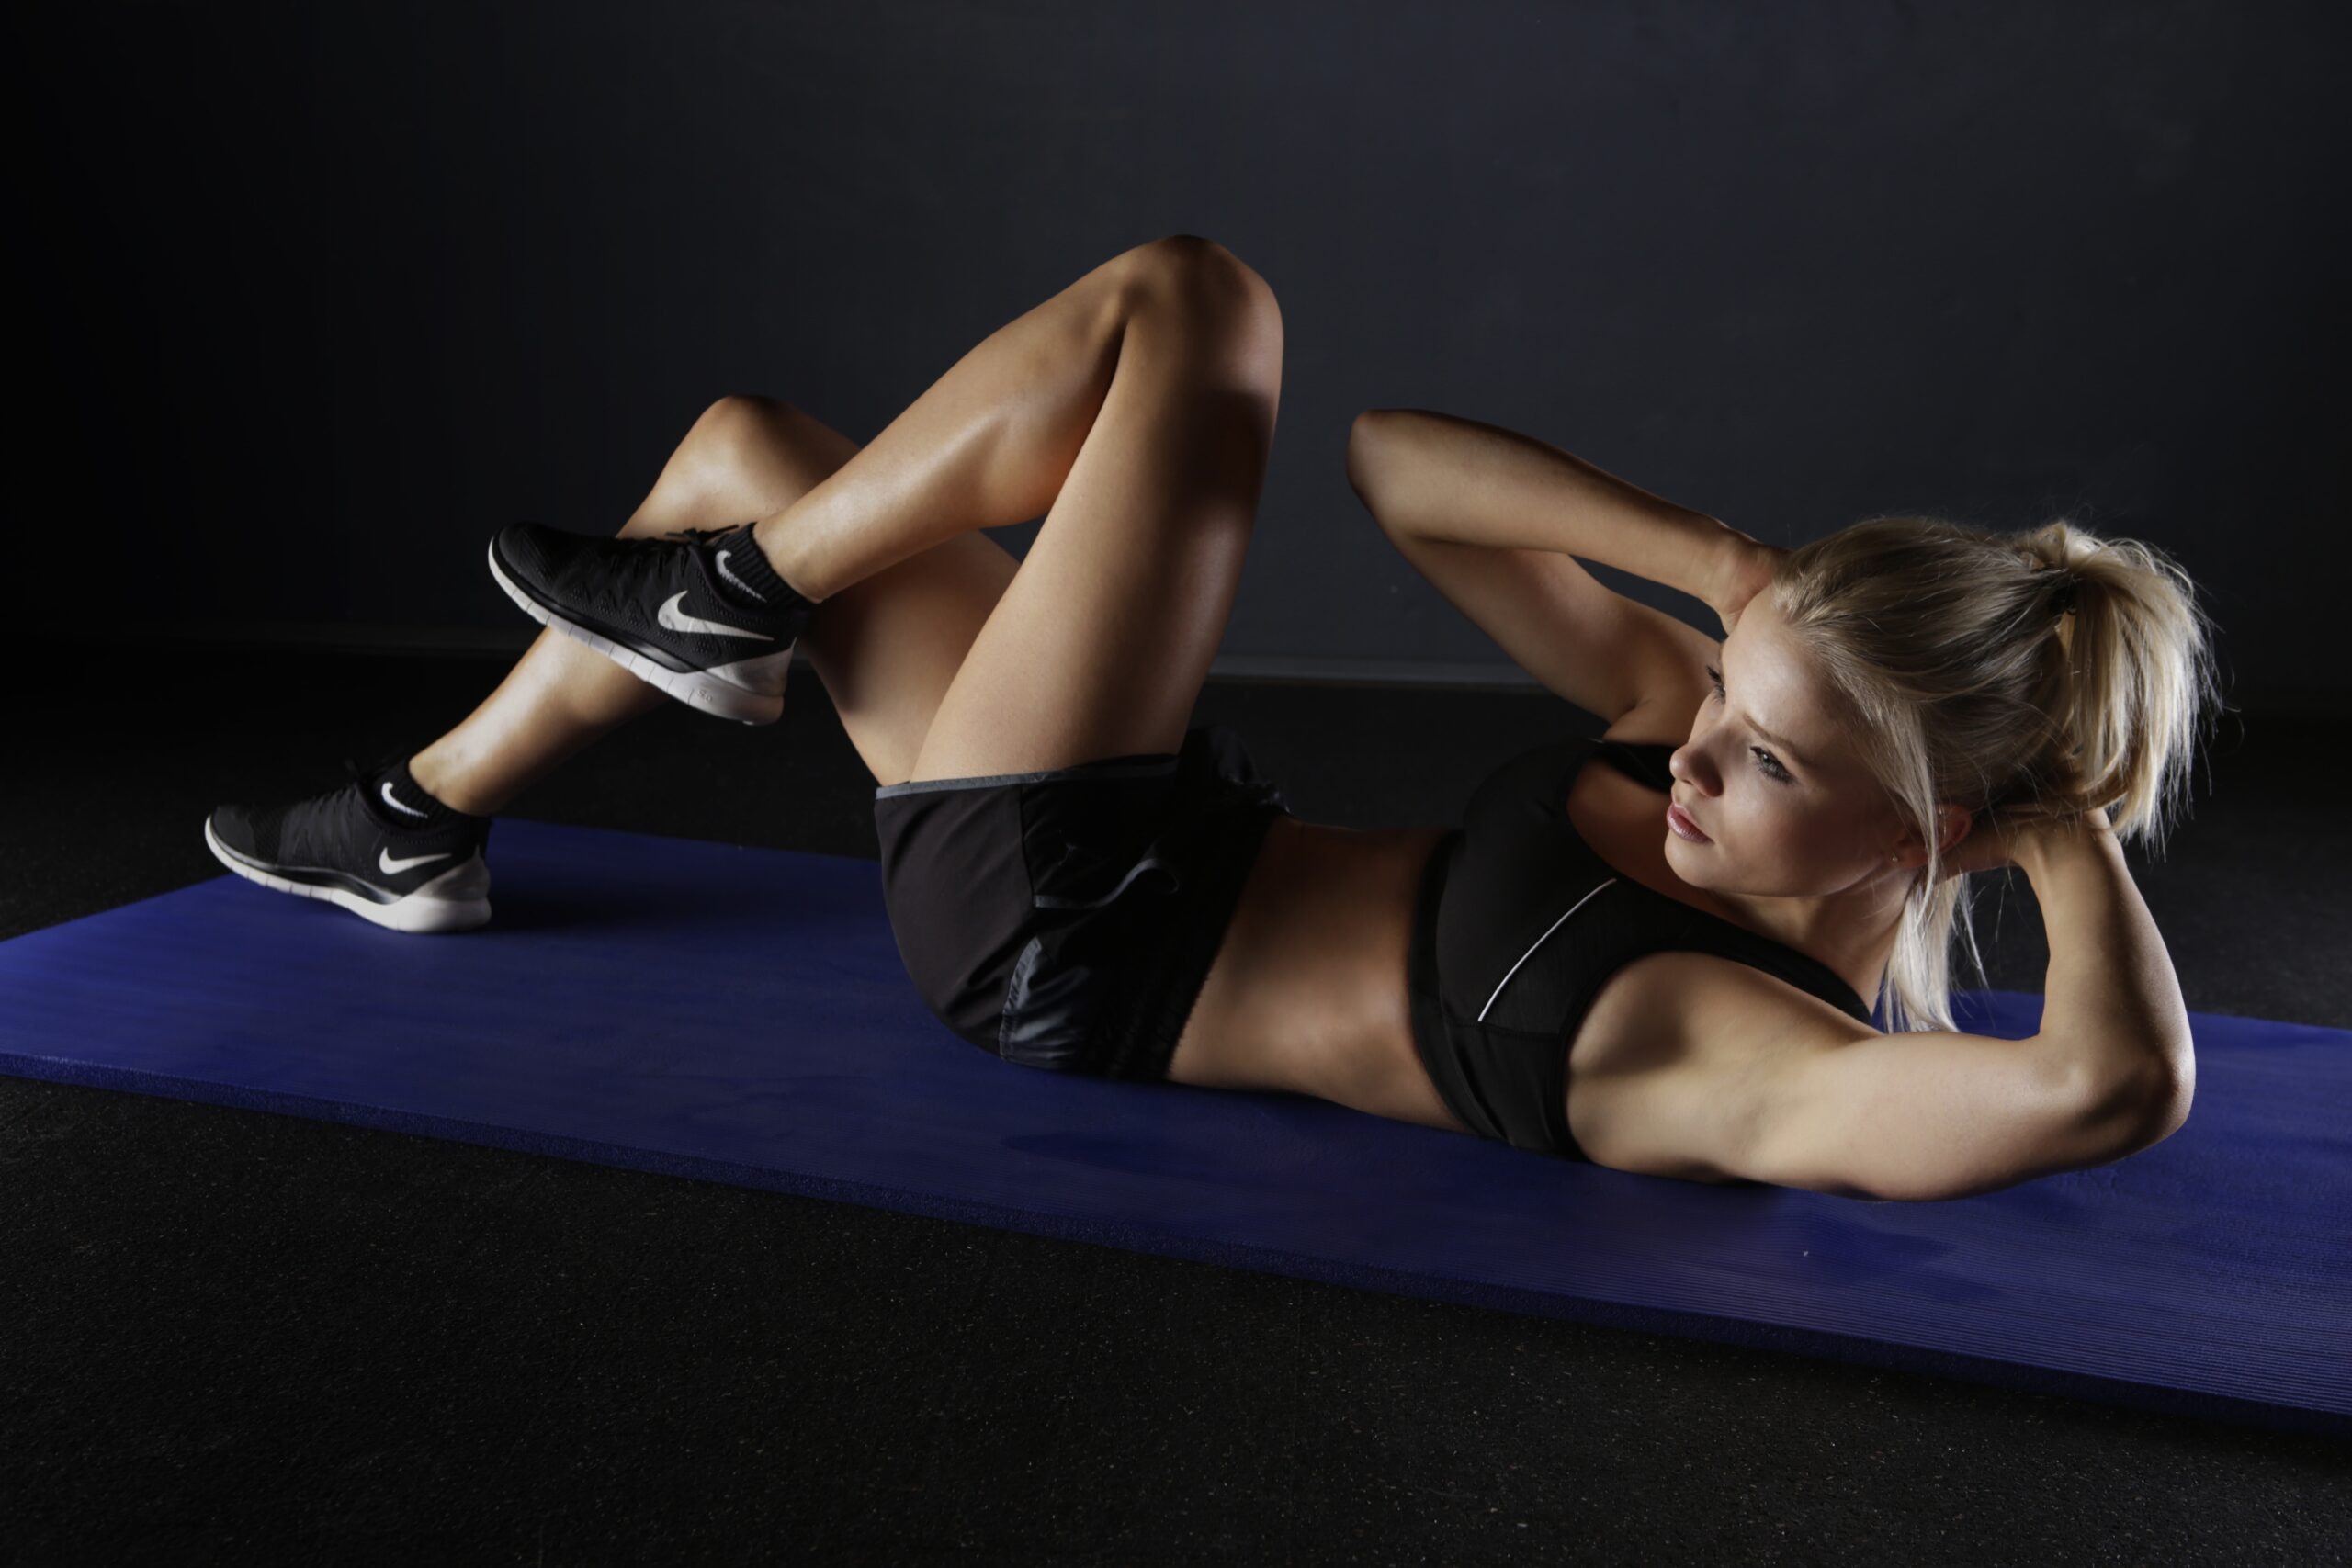 woman on the floor exercising